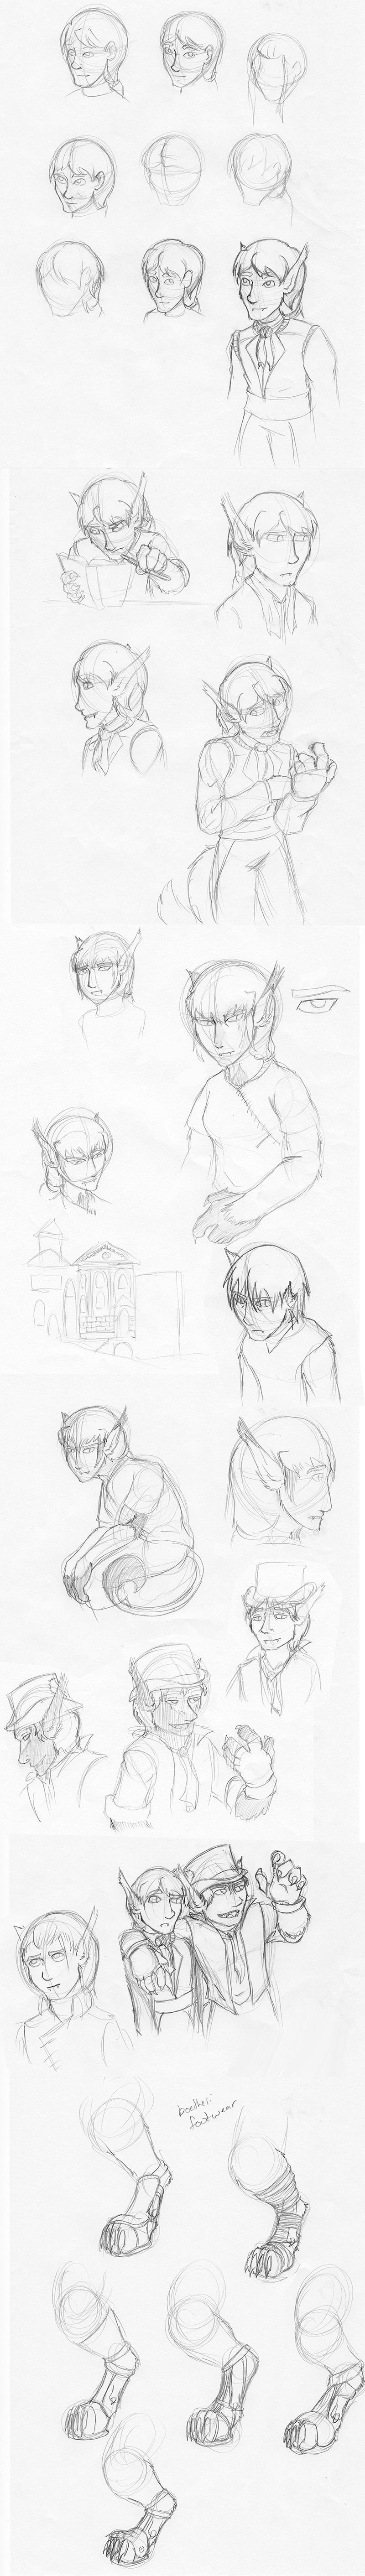 TM2 Sketchdump2